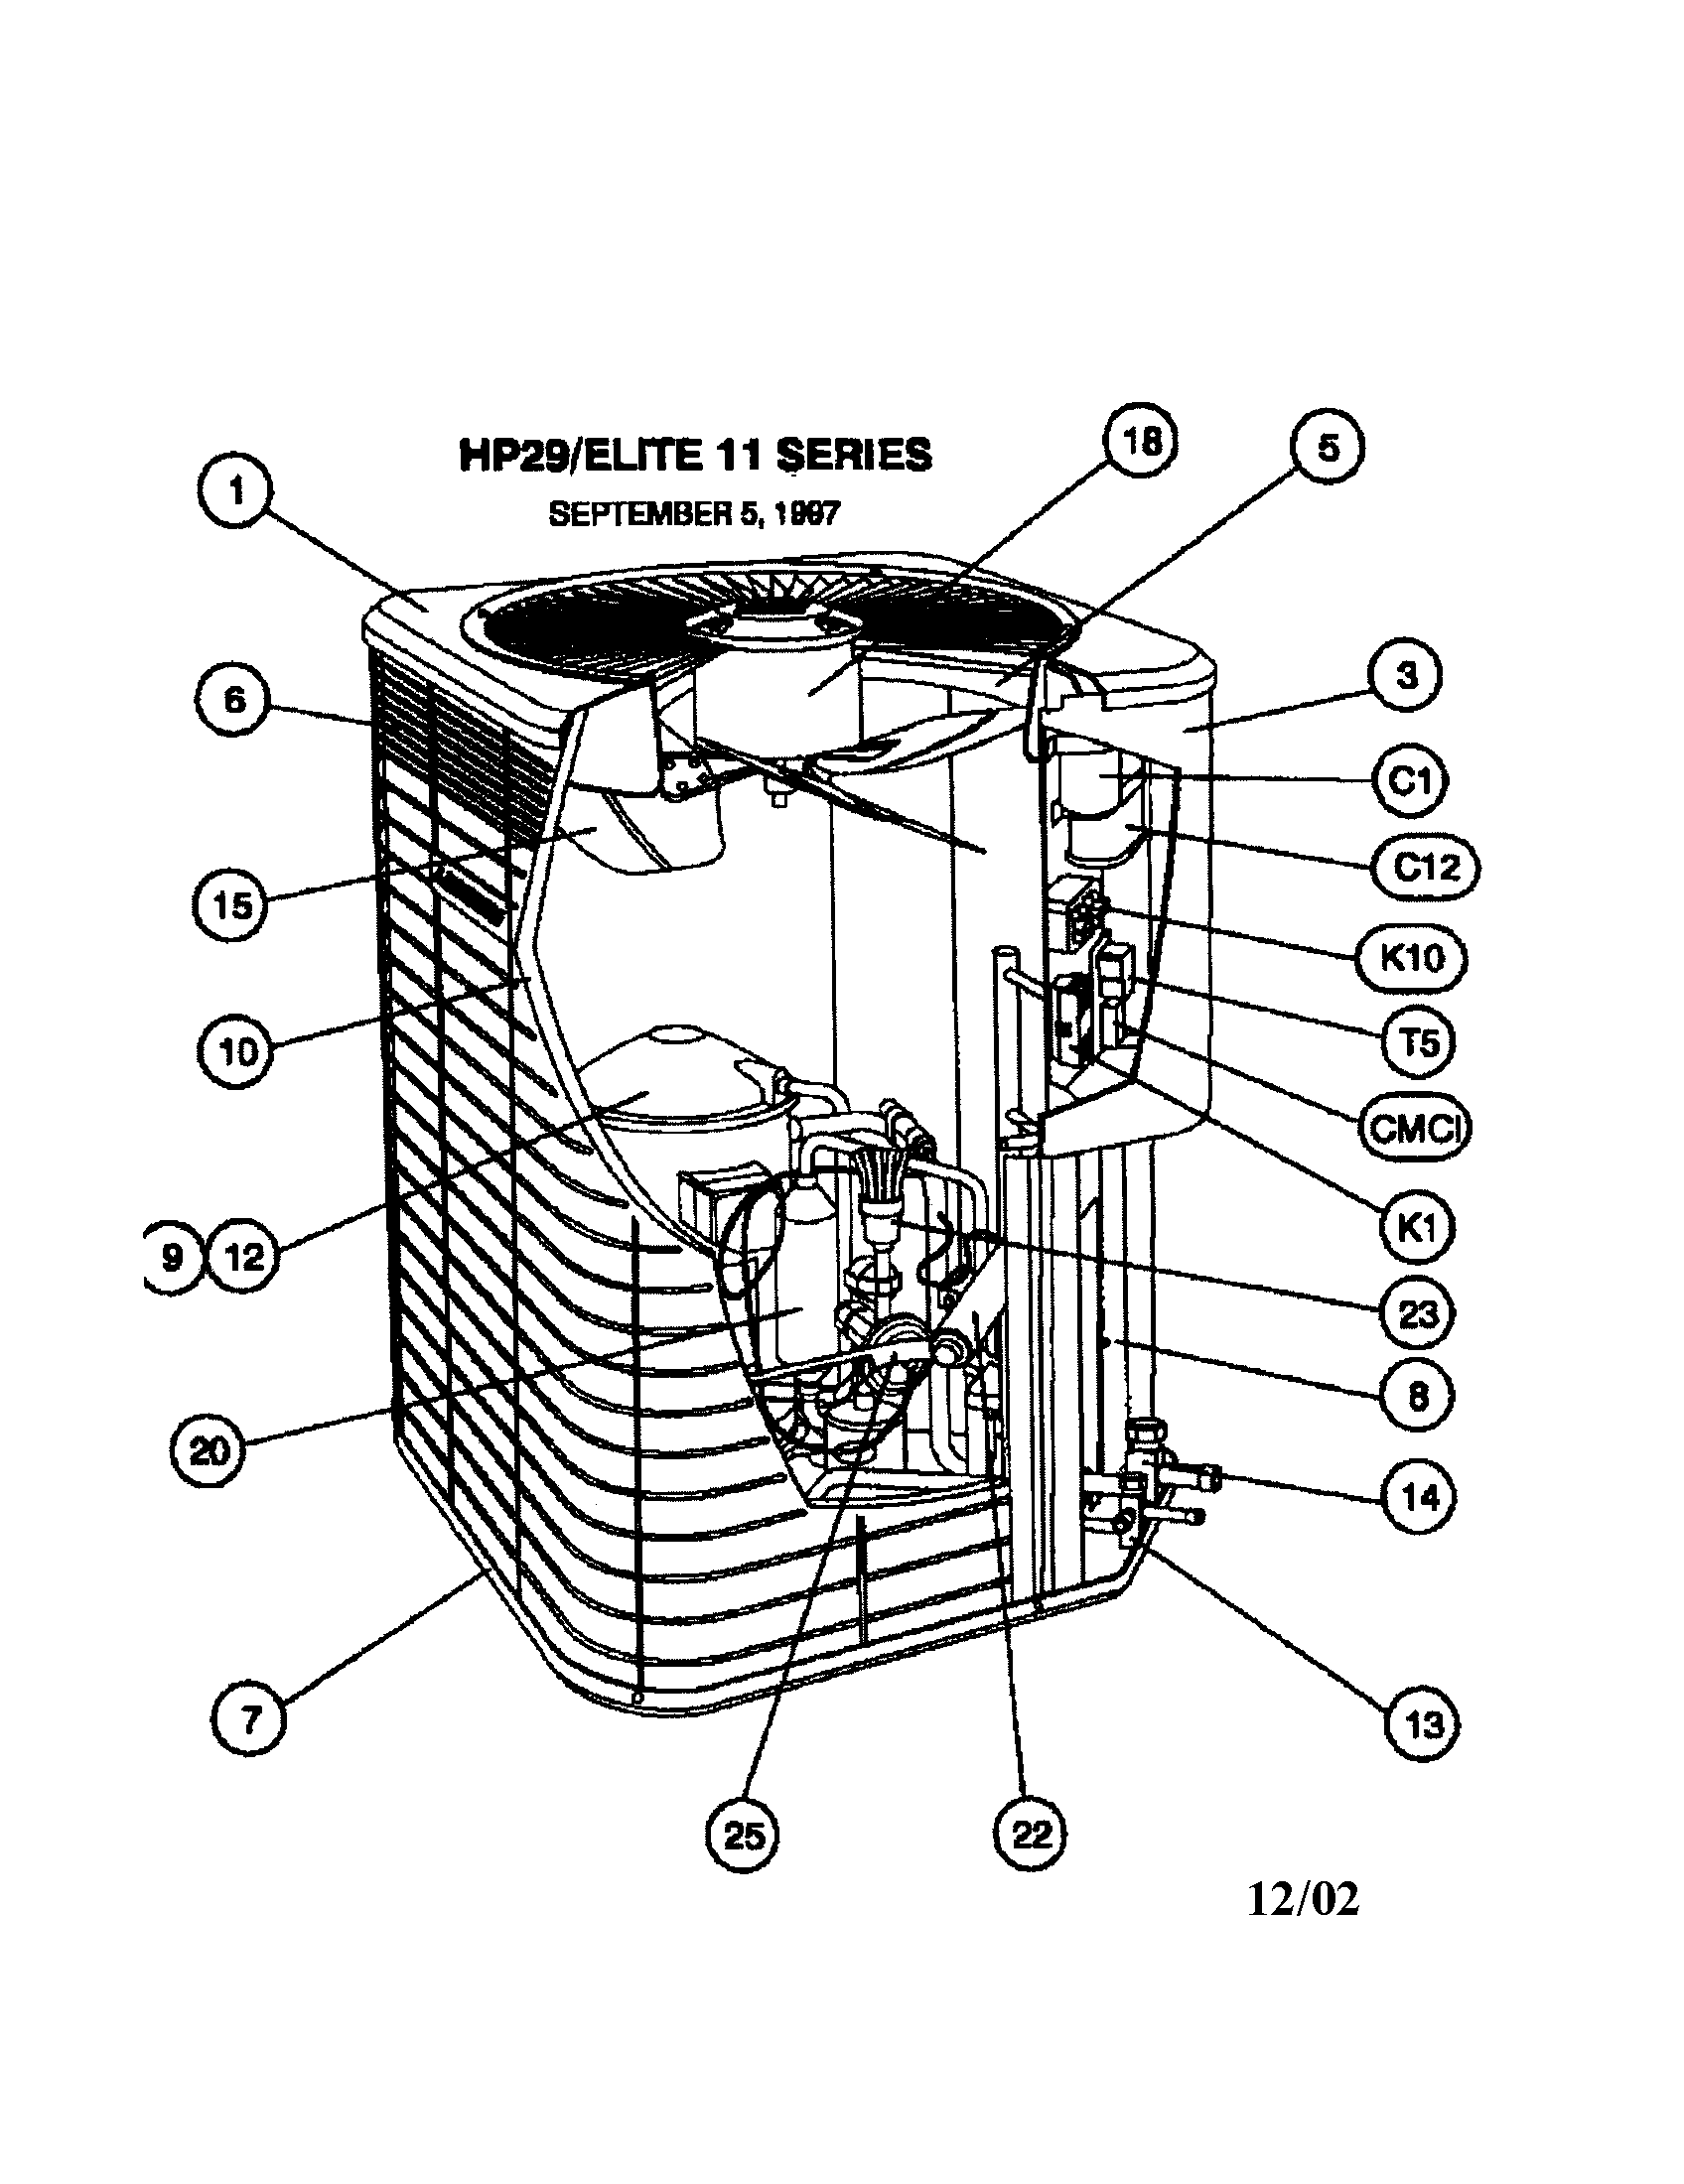 Lennox Central Air Conditioner Hs23-461-2p Wiring Diagram